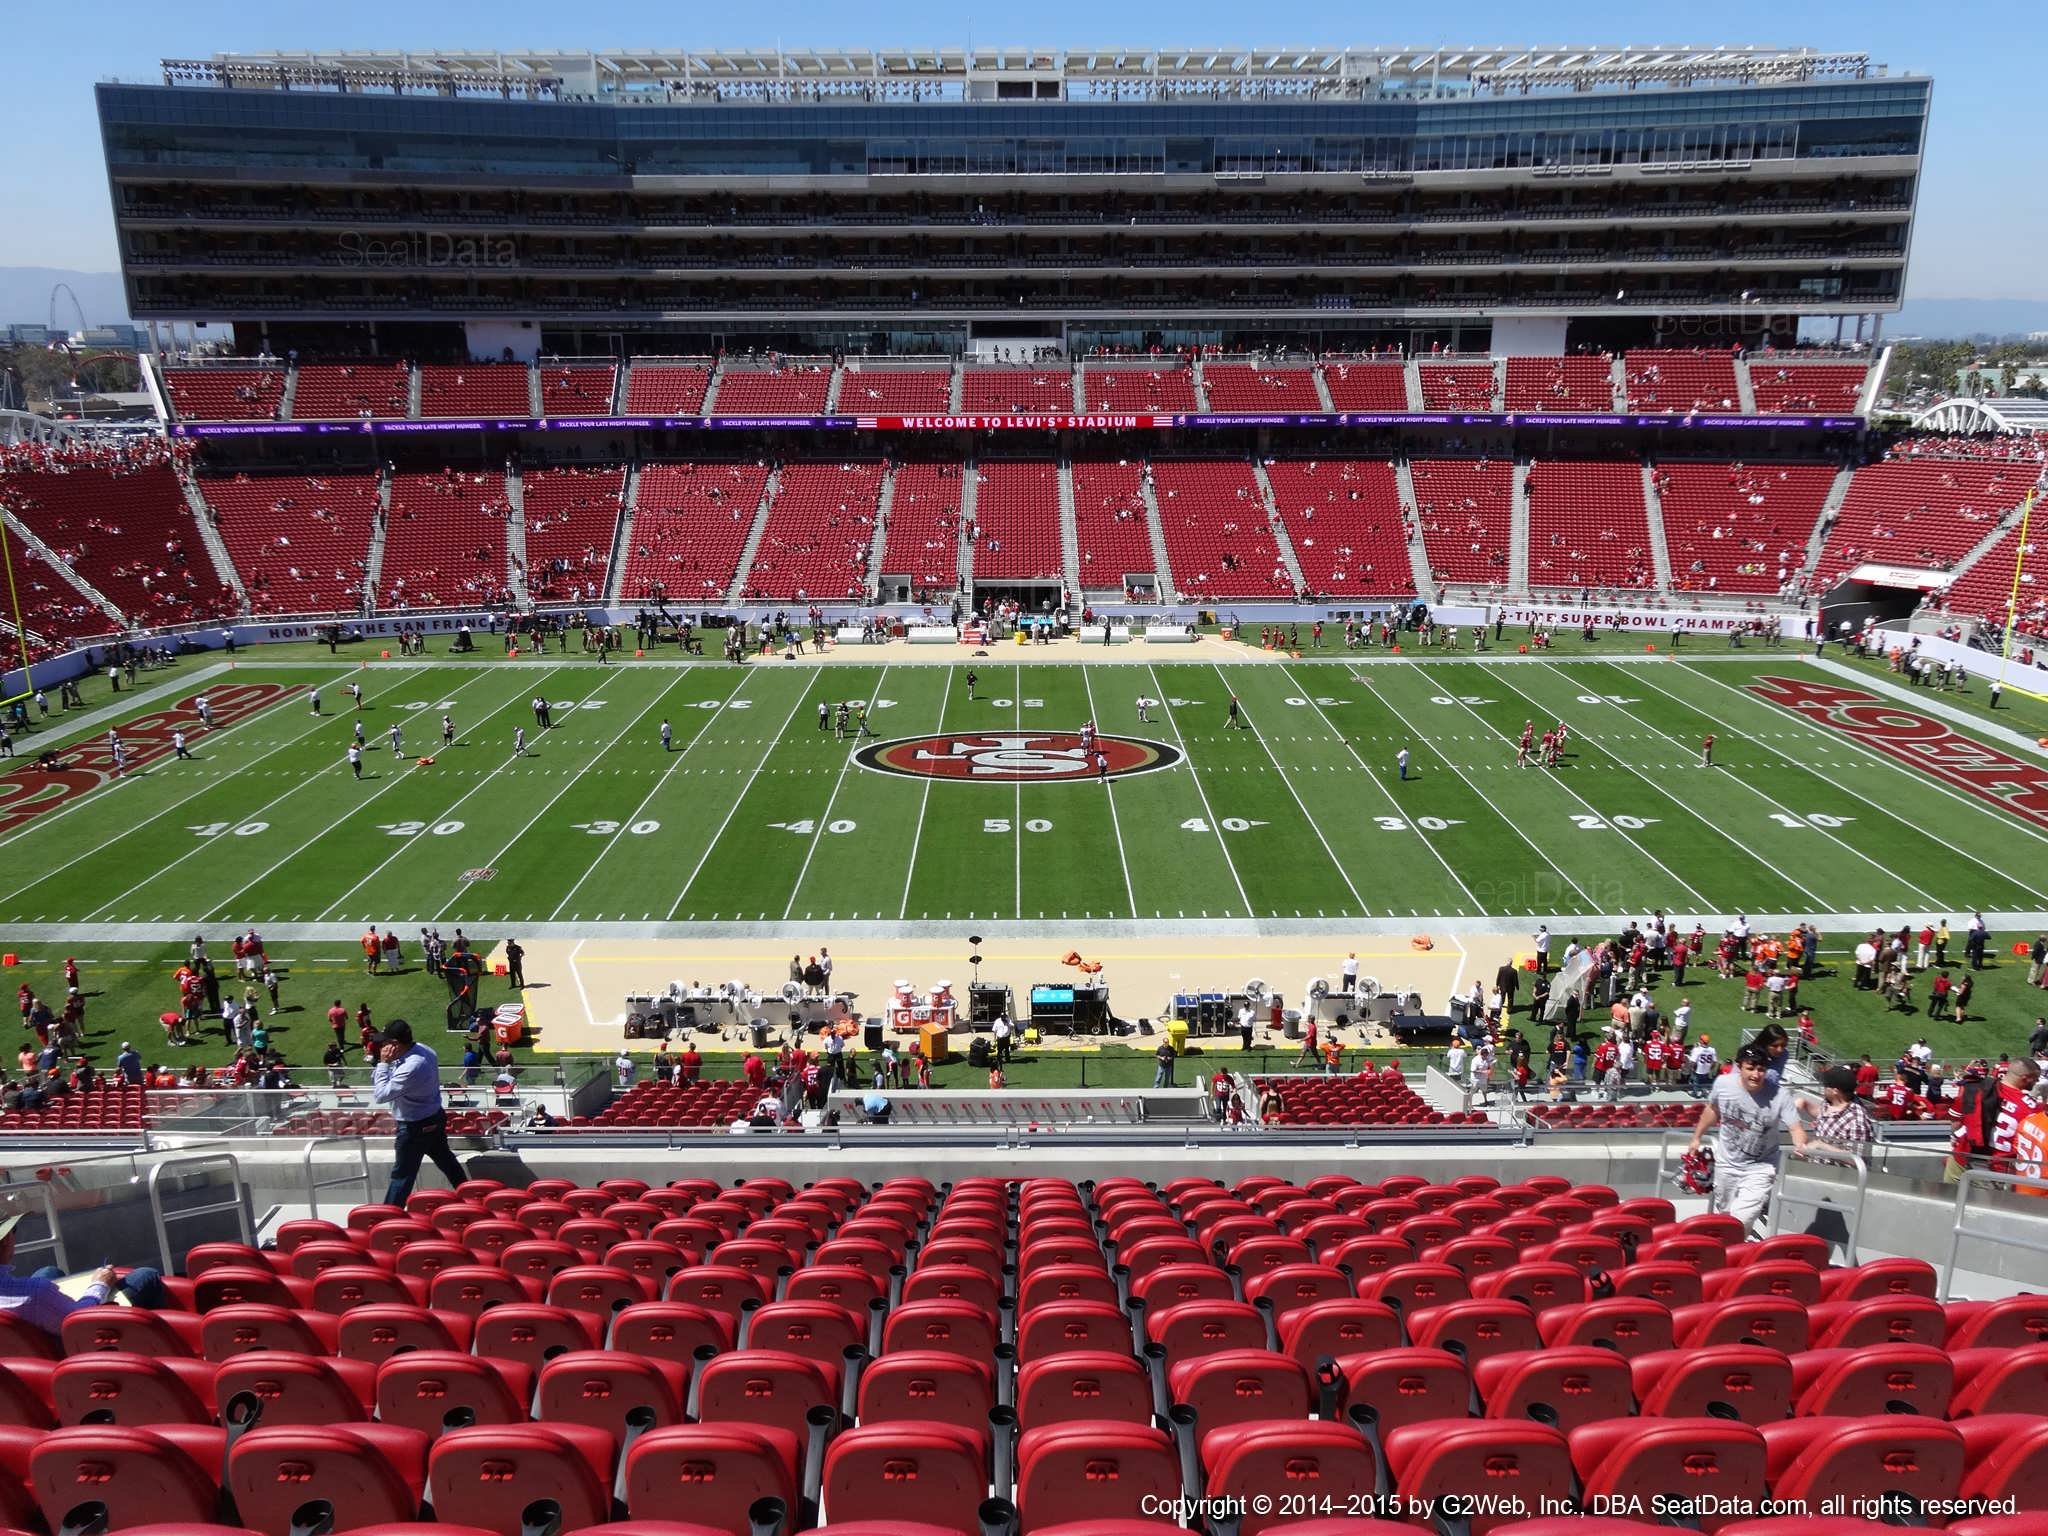 Seat view from section 216 at Levi's Stadium, home of the San Francisco 49ers